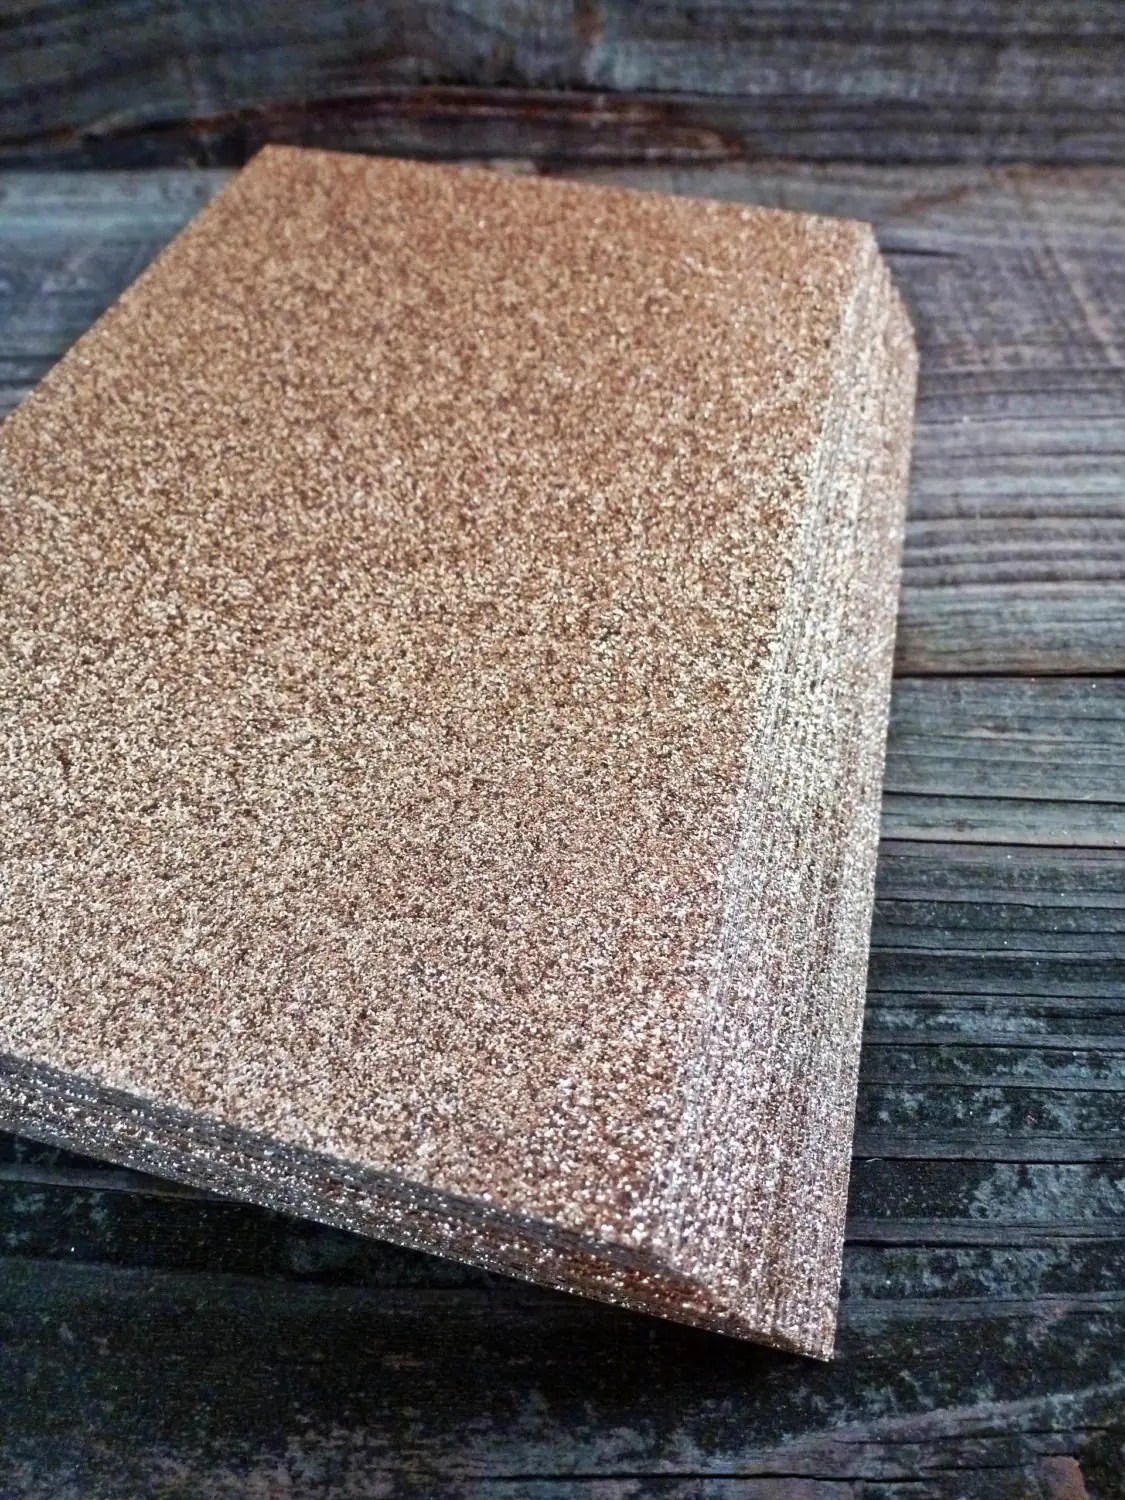 Rose Gold Glitter Notecards Blank One Sided Glitter Cardstock Invitations Wedding Shower